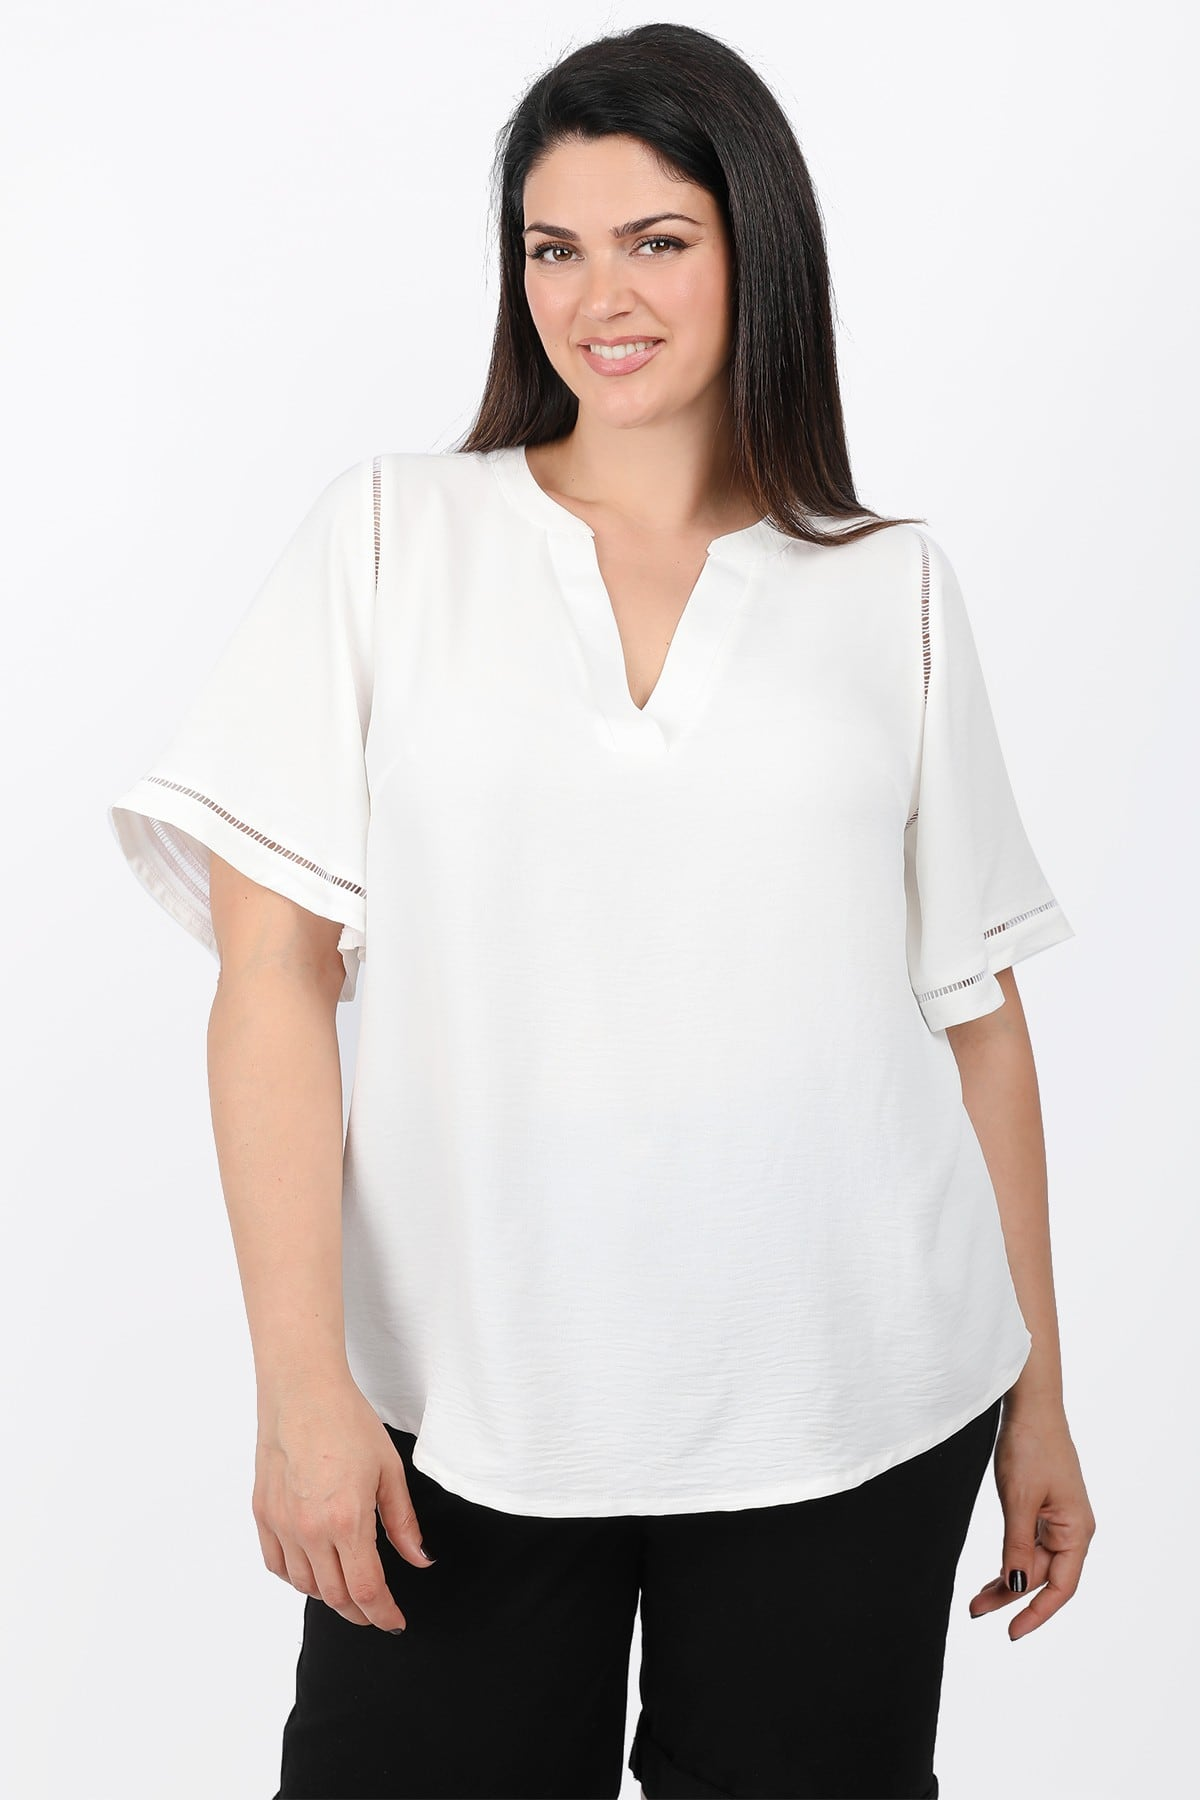 Blouse with perforated details